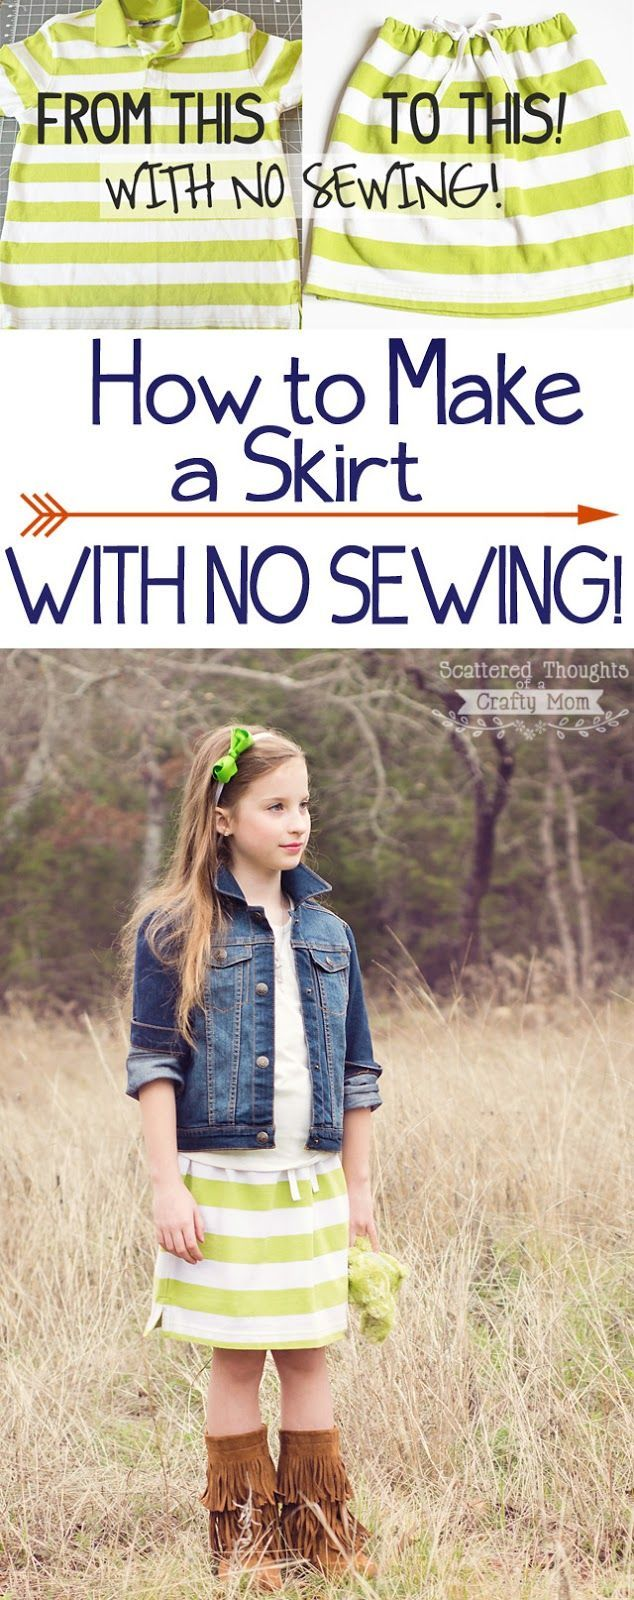 Learn how to make a skirt with no sewing!